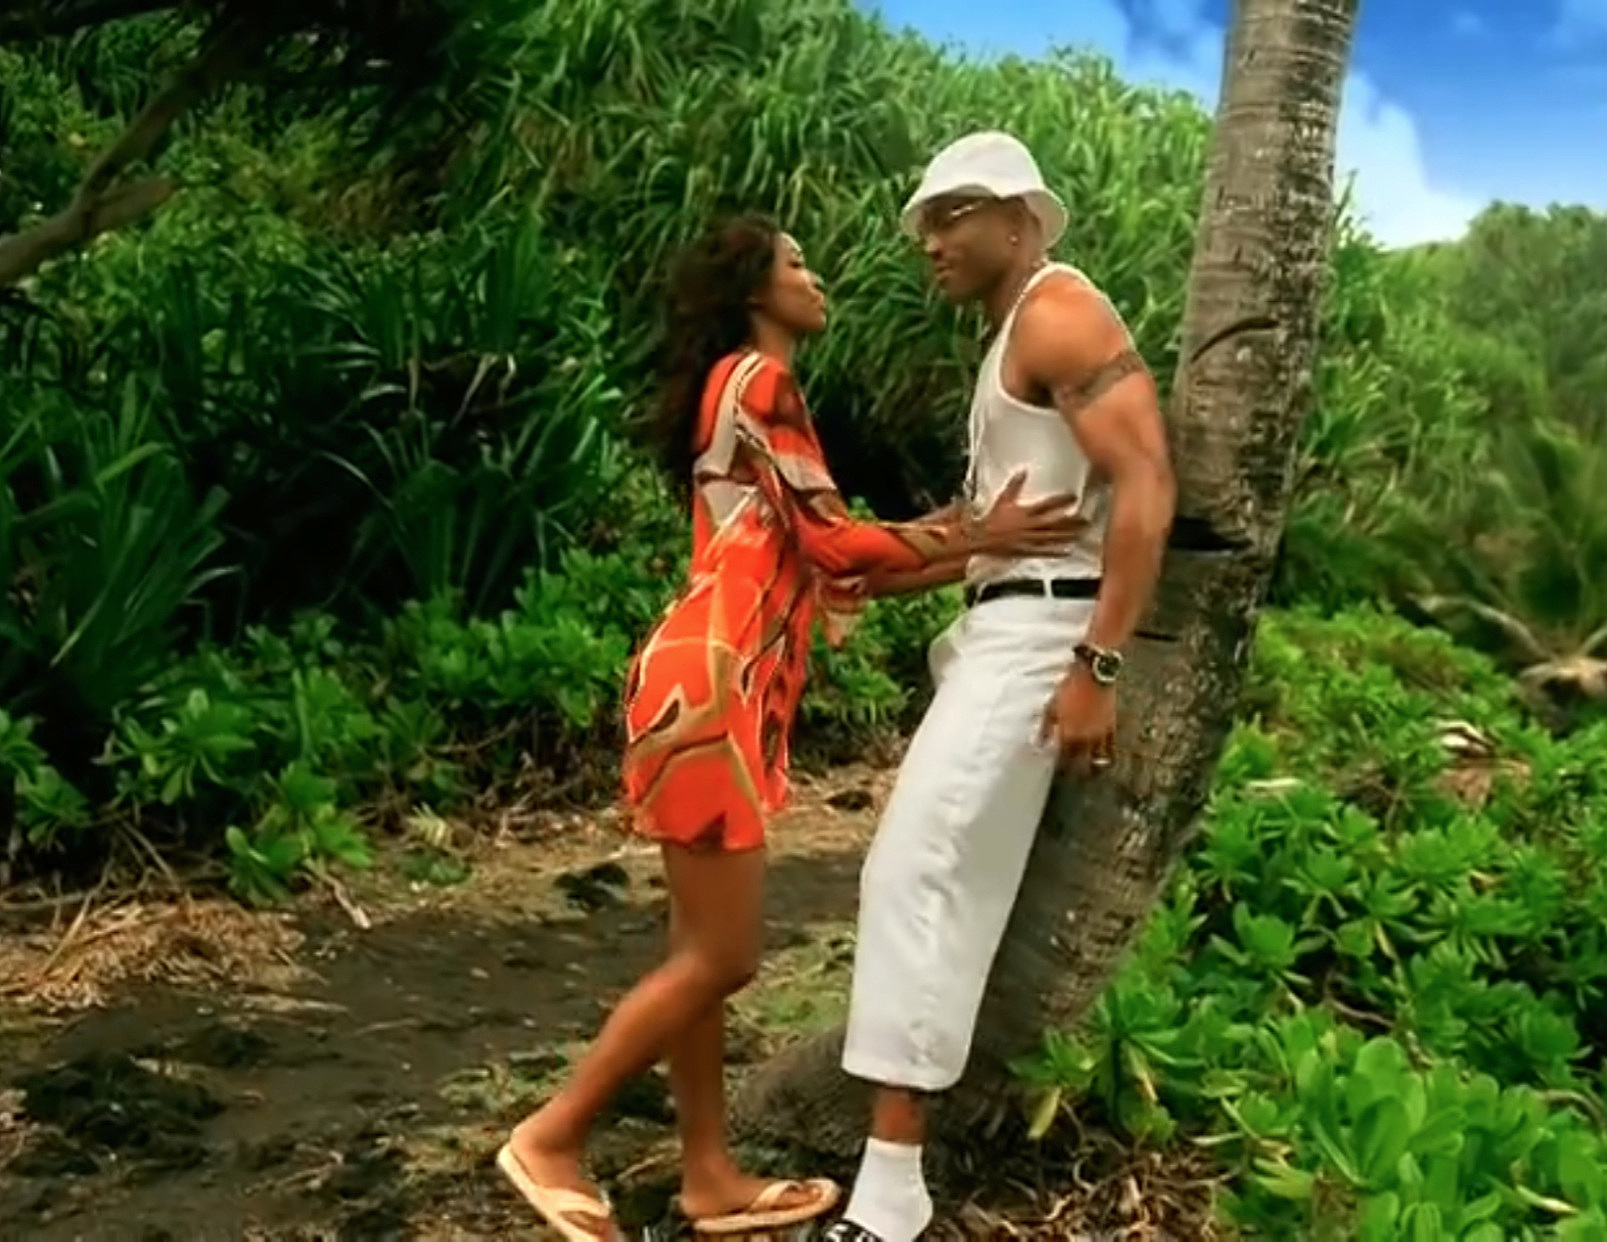 Color Inspo | Paradise by LL Cool J + Amerie - I loved Gabrielle union's vibe in the video and wanted to create a similar look! this song brings back so many memories, I think I was in middle school when it came out! I thought LL was so cool back then and I had the biggest crush lol